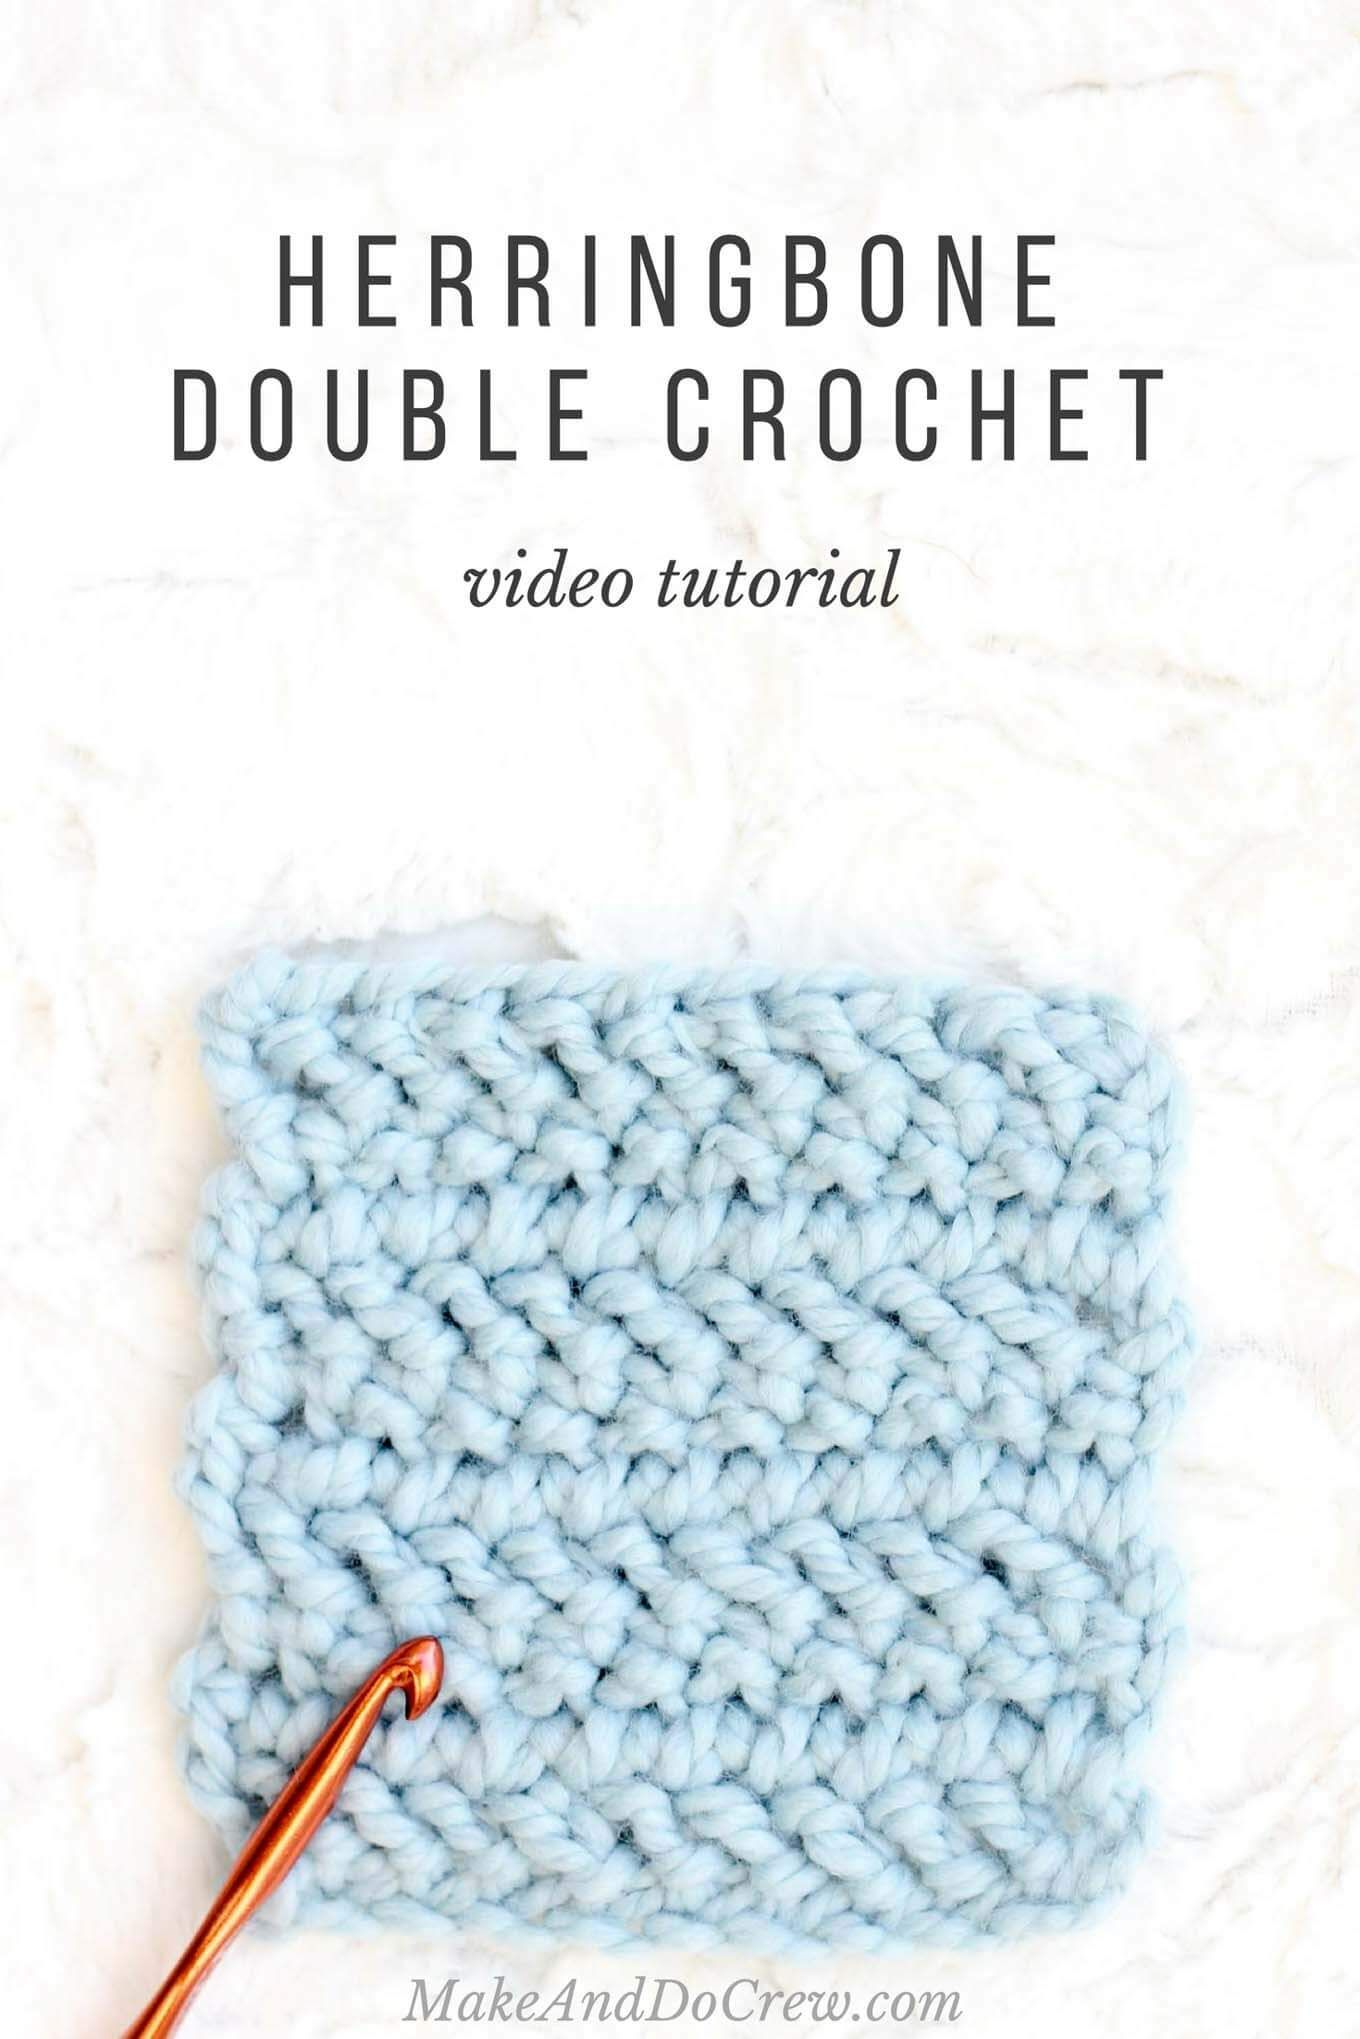 Video: How to Crochet the Herringbone Double Crochet Stitch ...